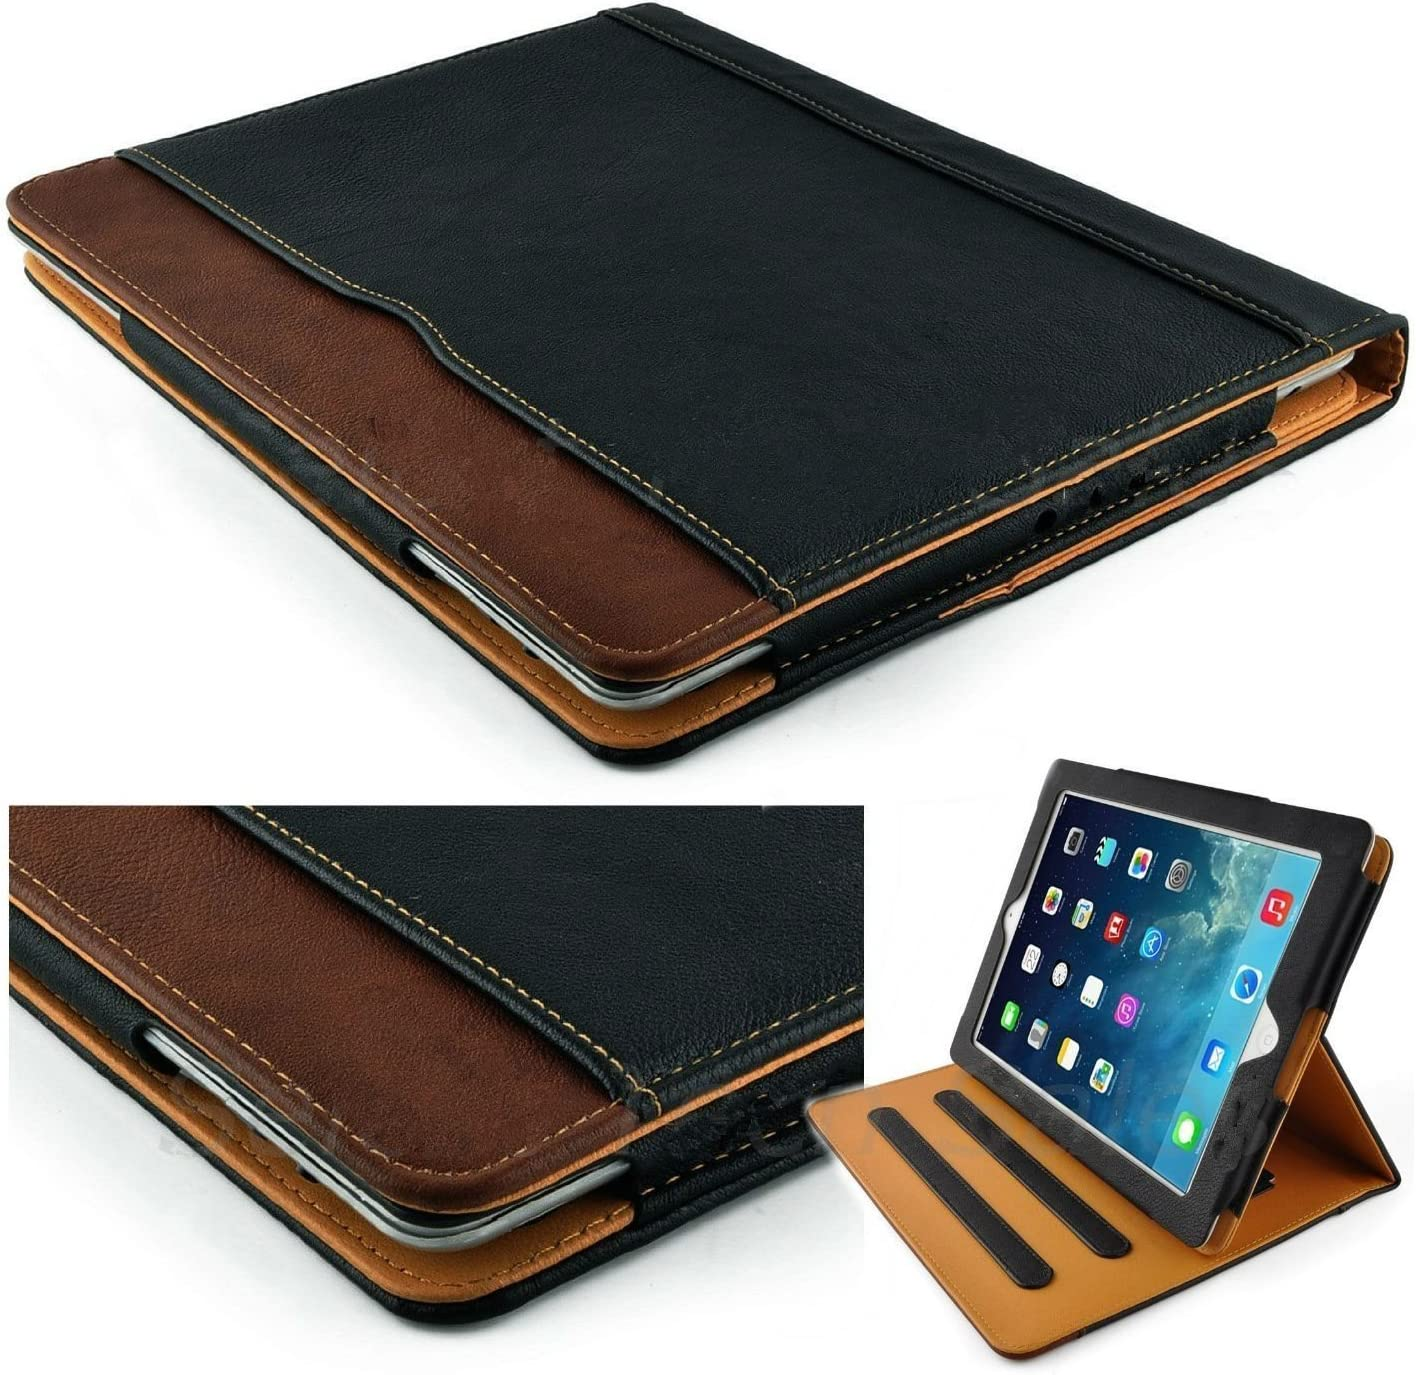 New S-Tech Black and Tan Apple iPad Air 2 Soft Leather Wallet Smart Cover with Sleep / Wake Feature Flip Case